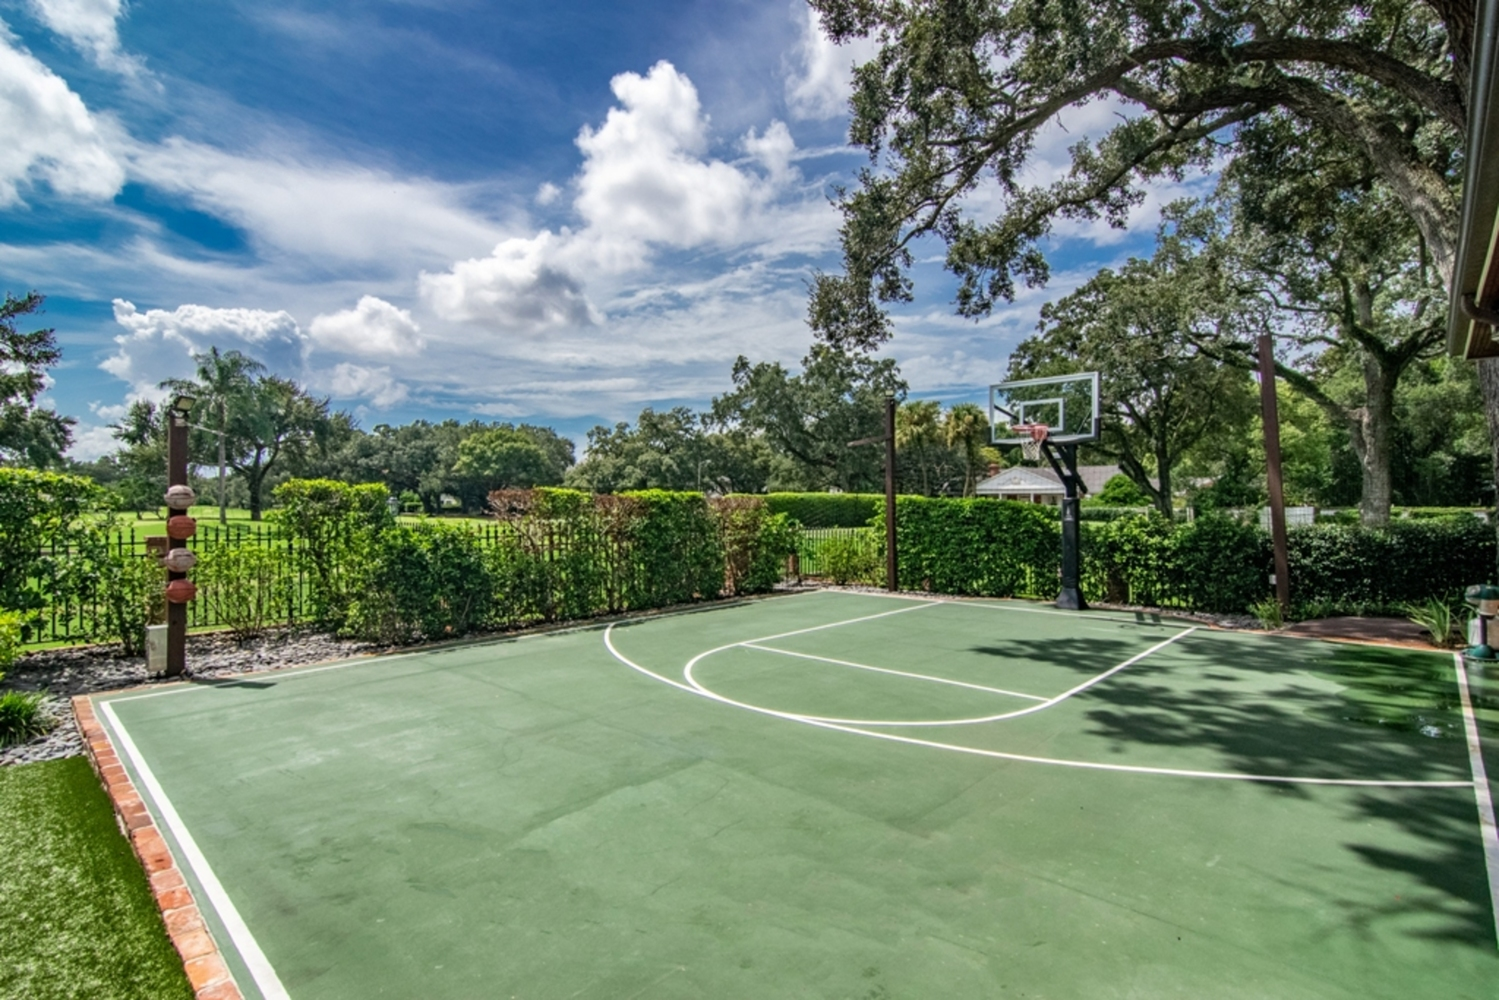 133 basketball court